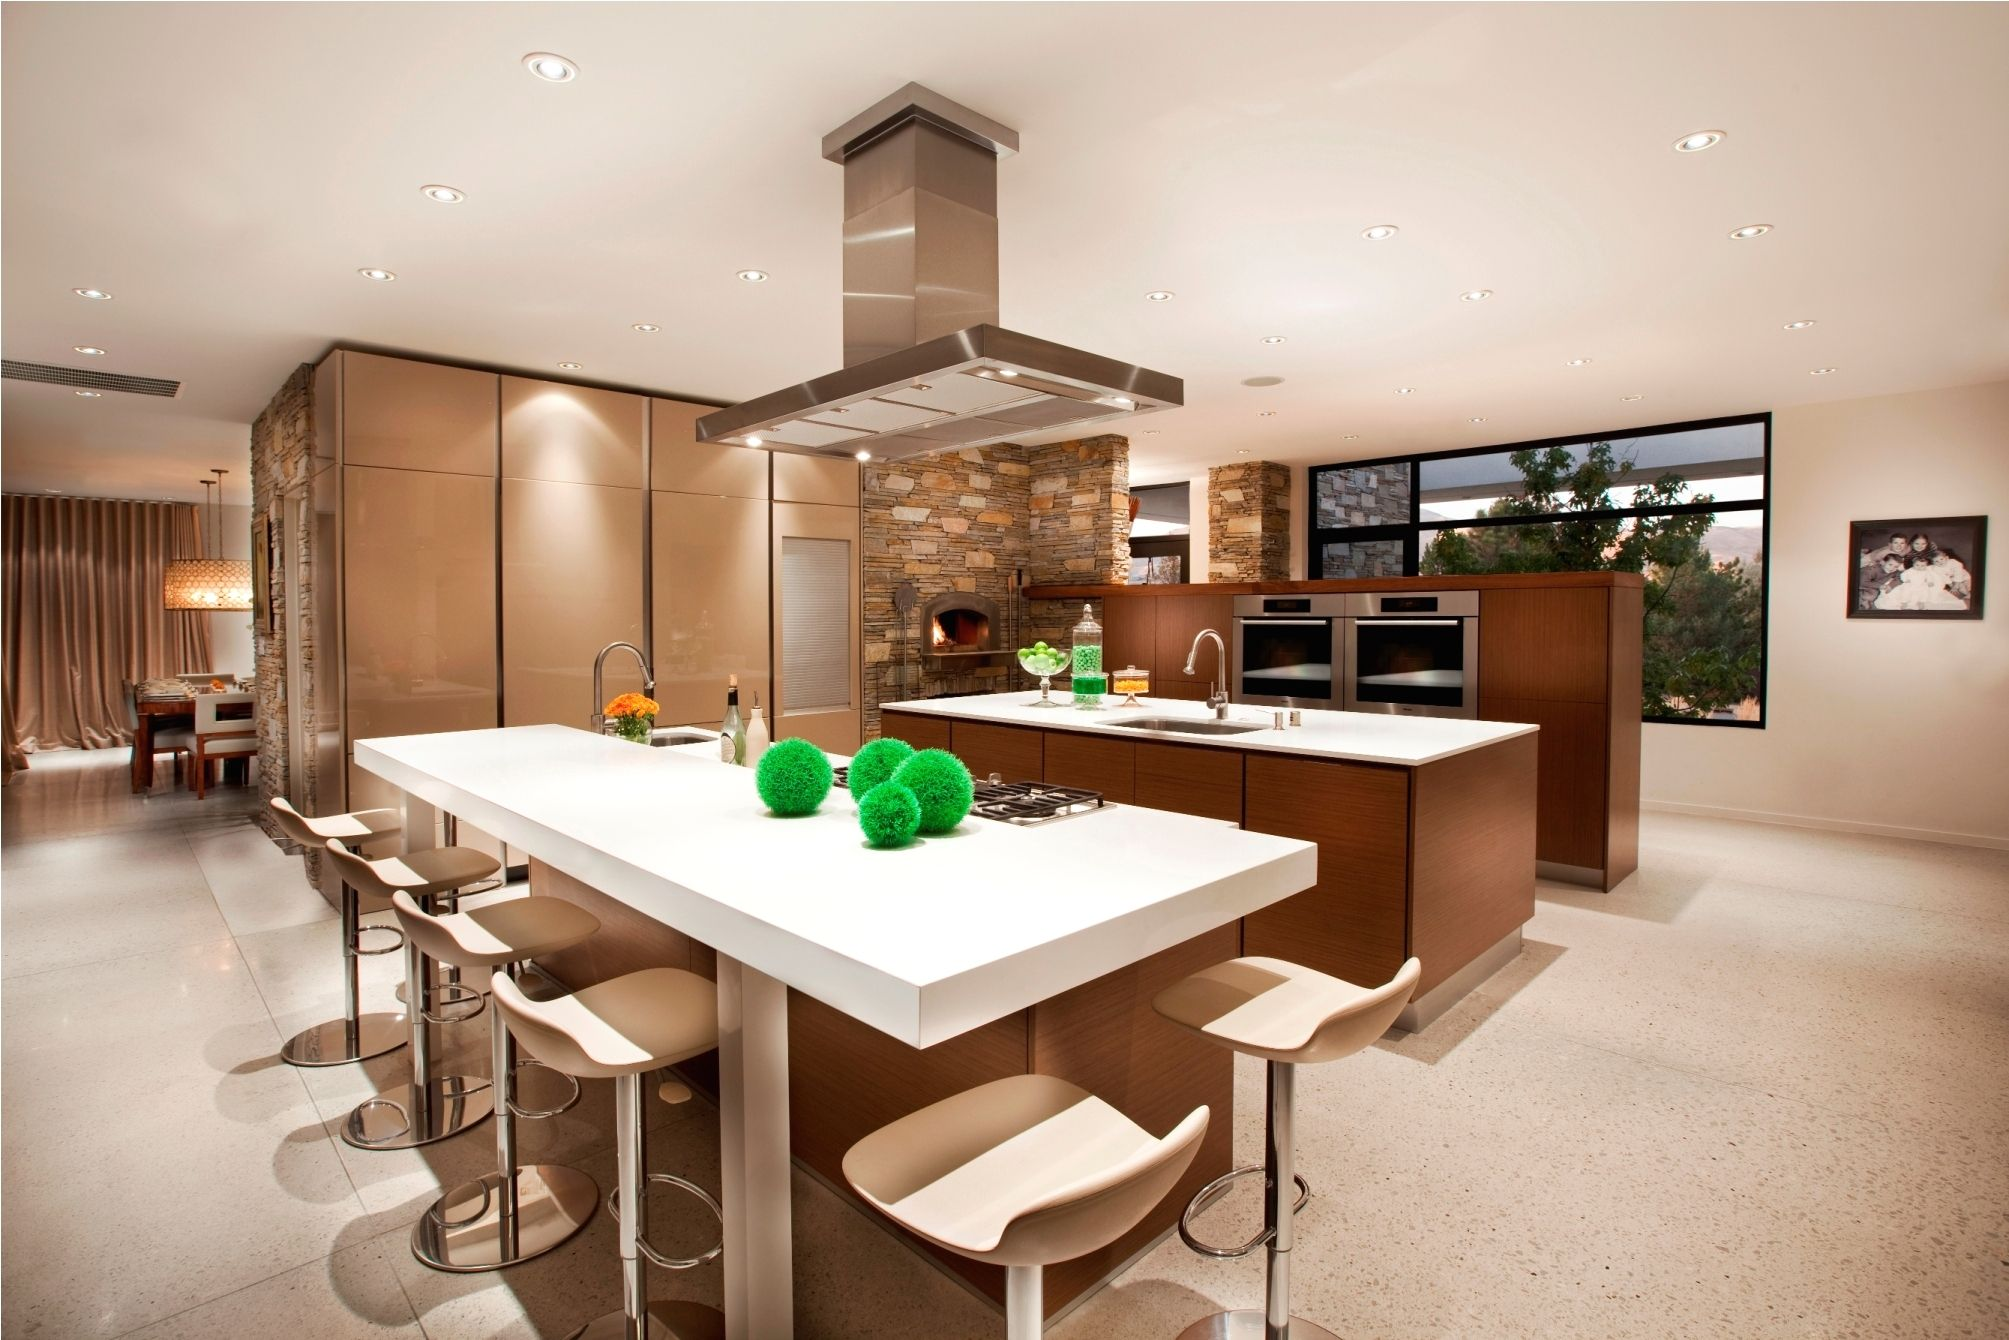 Kitchen Room Decoration Open Floor Plan Kitchen Dining Living Room Photo 1 Design